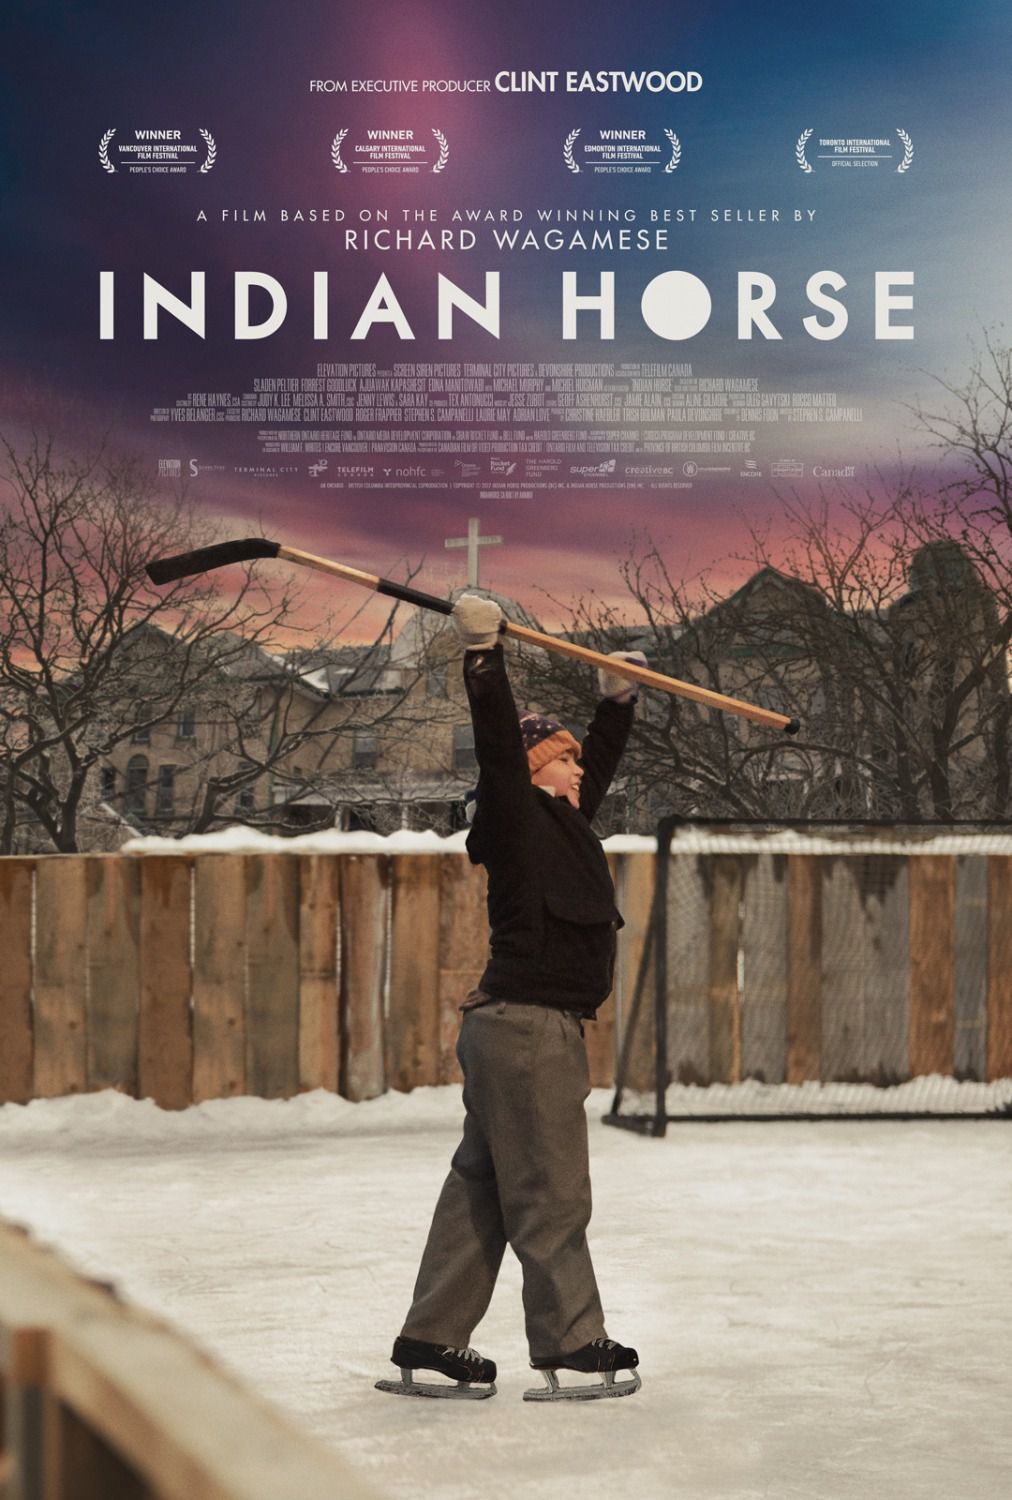 Indian Horse - based on best seller by Richard Wagamese - film poster 2018